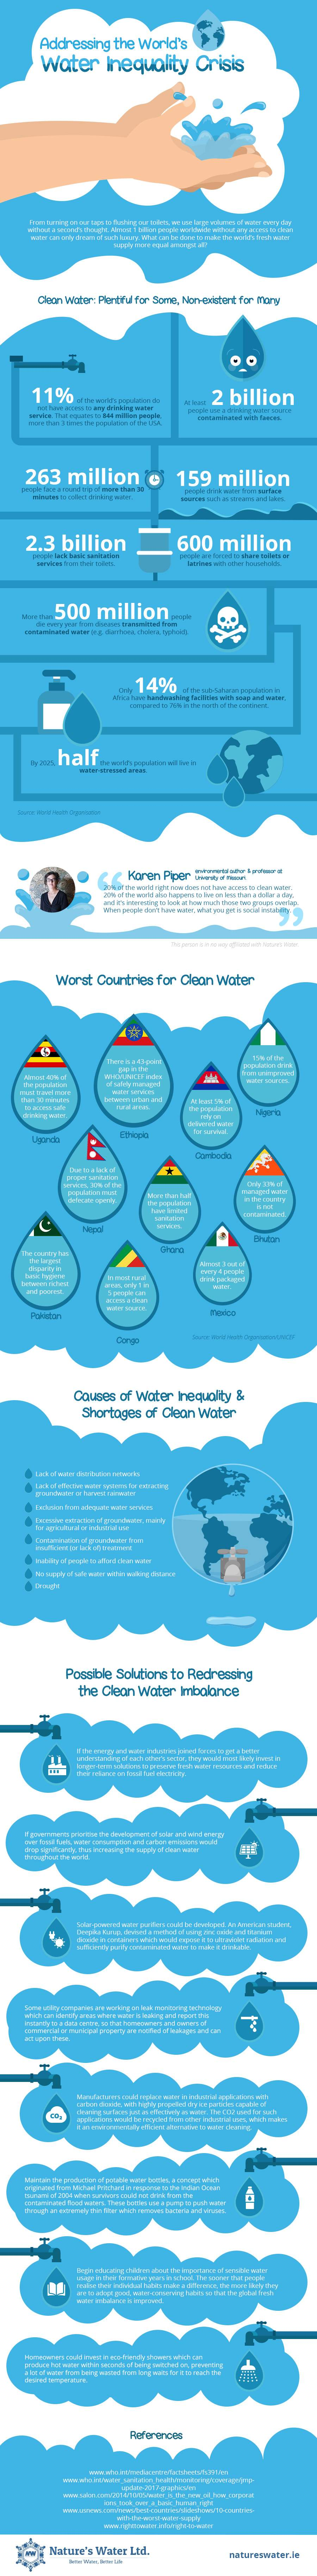 Water Inequality Crisis